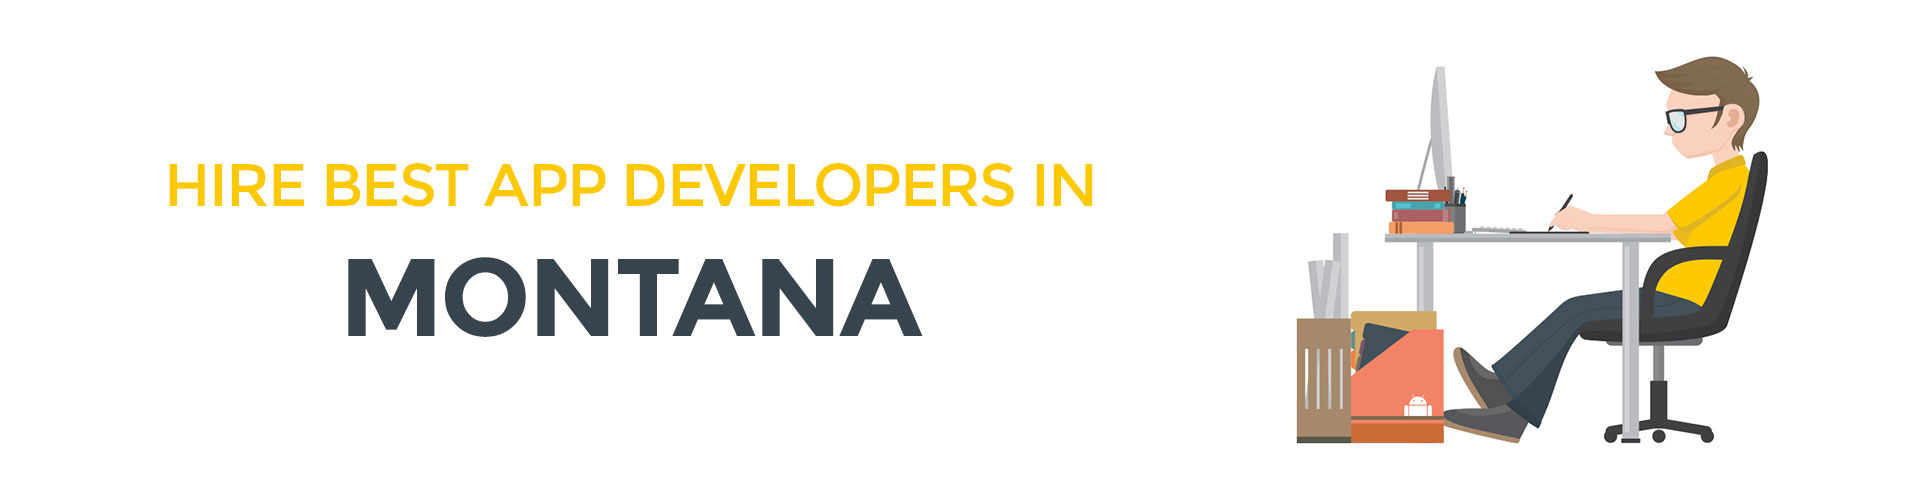 mobile app development company montana